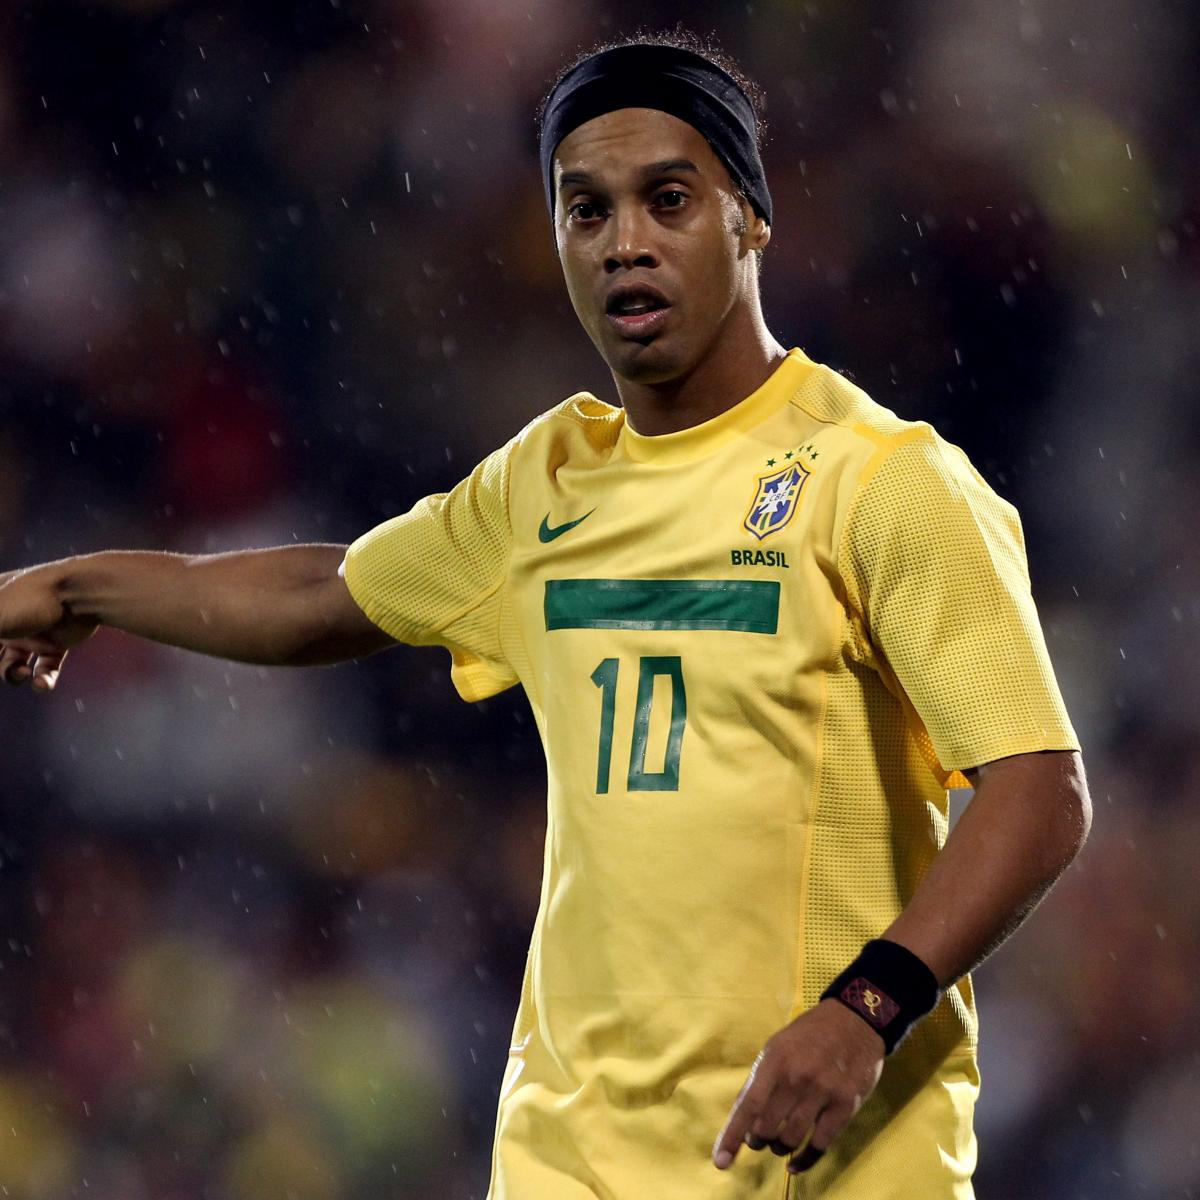 Ronaldinho Gaucho's 2013: A Year to Remember for the Brazilian Playmaker